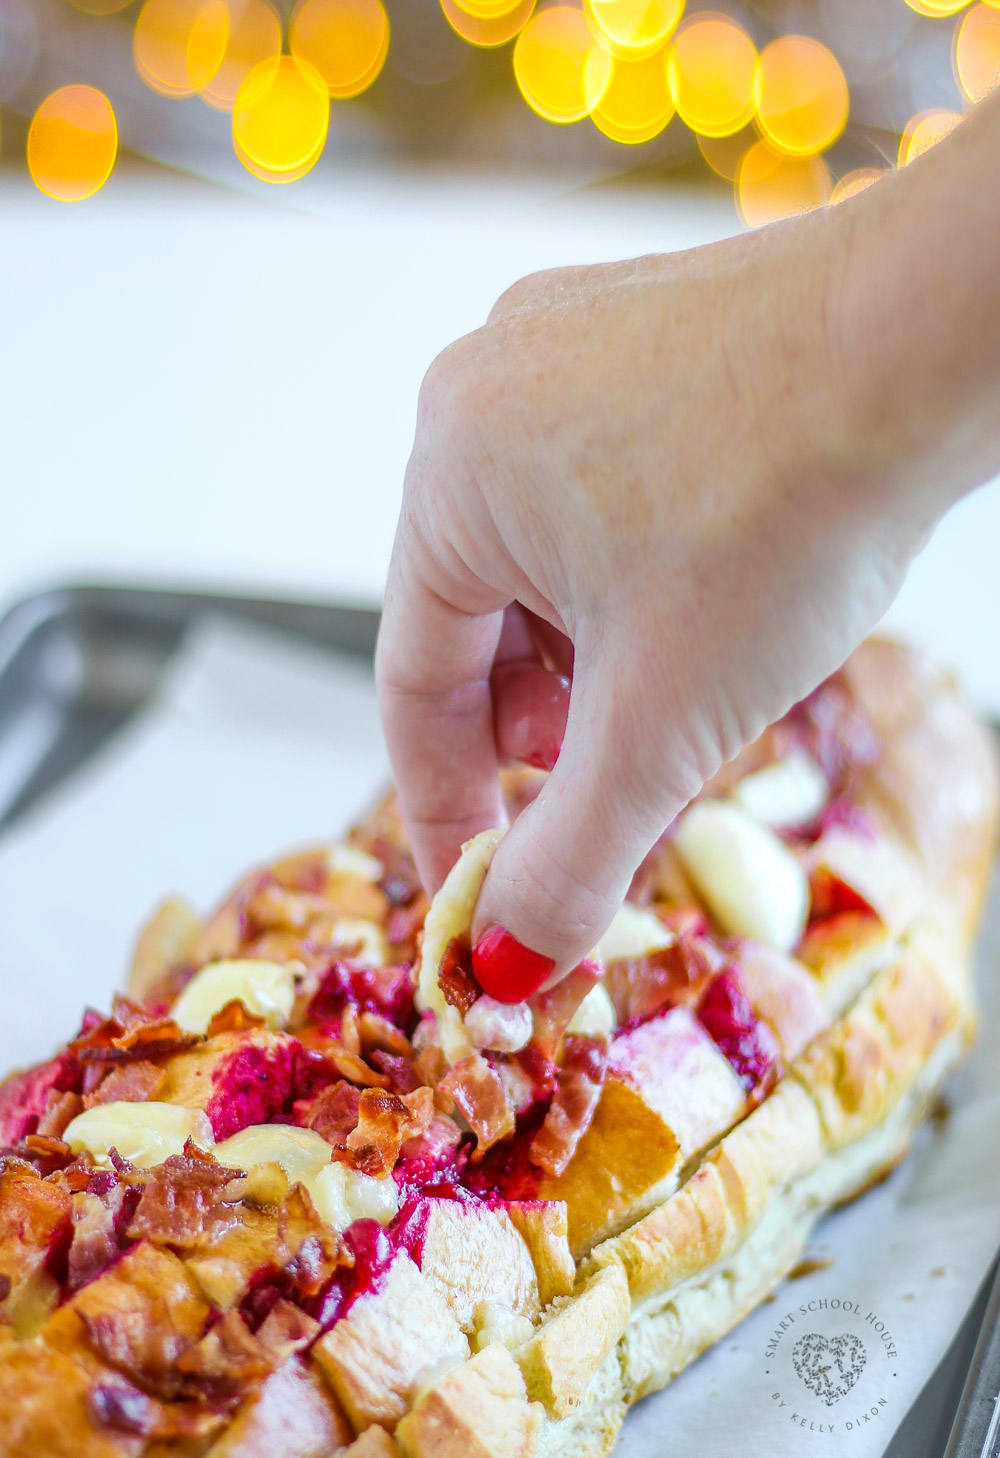 Whether planning recipes for holiday leftovers or planning appetizers for holiday get togethers, this Cheesy Bacon and Cranberry Pull Apart Bread recipe is a MUST have! It's cheesy, buttery, filled with bacon, and of course, festive cranberry sauce.